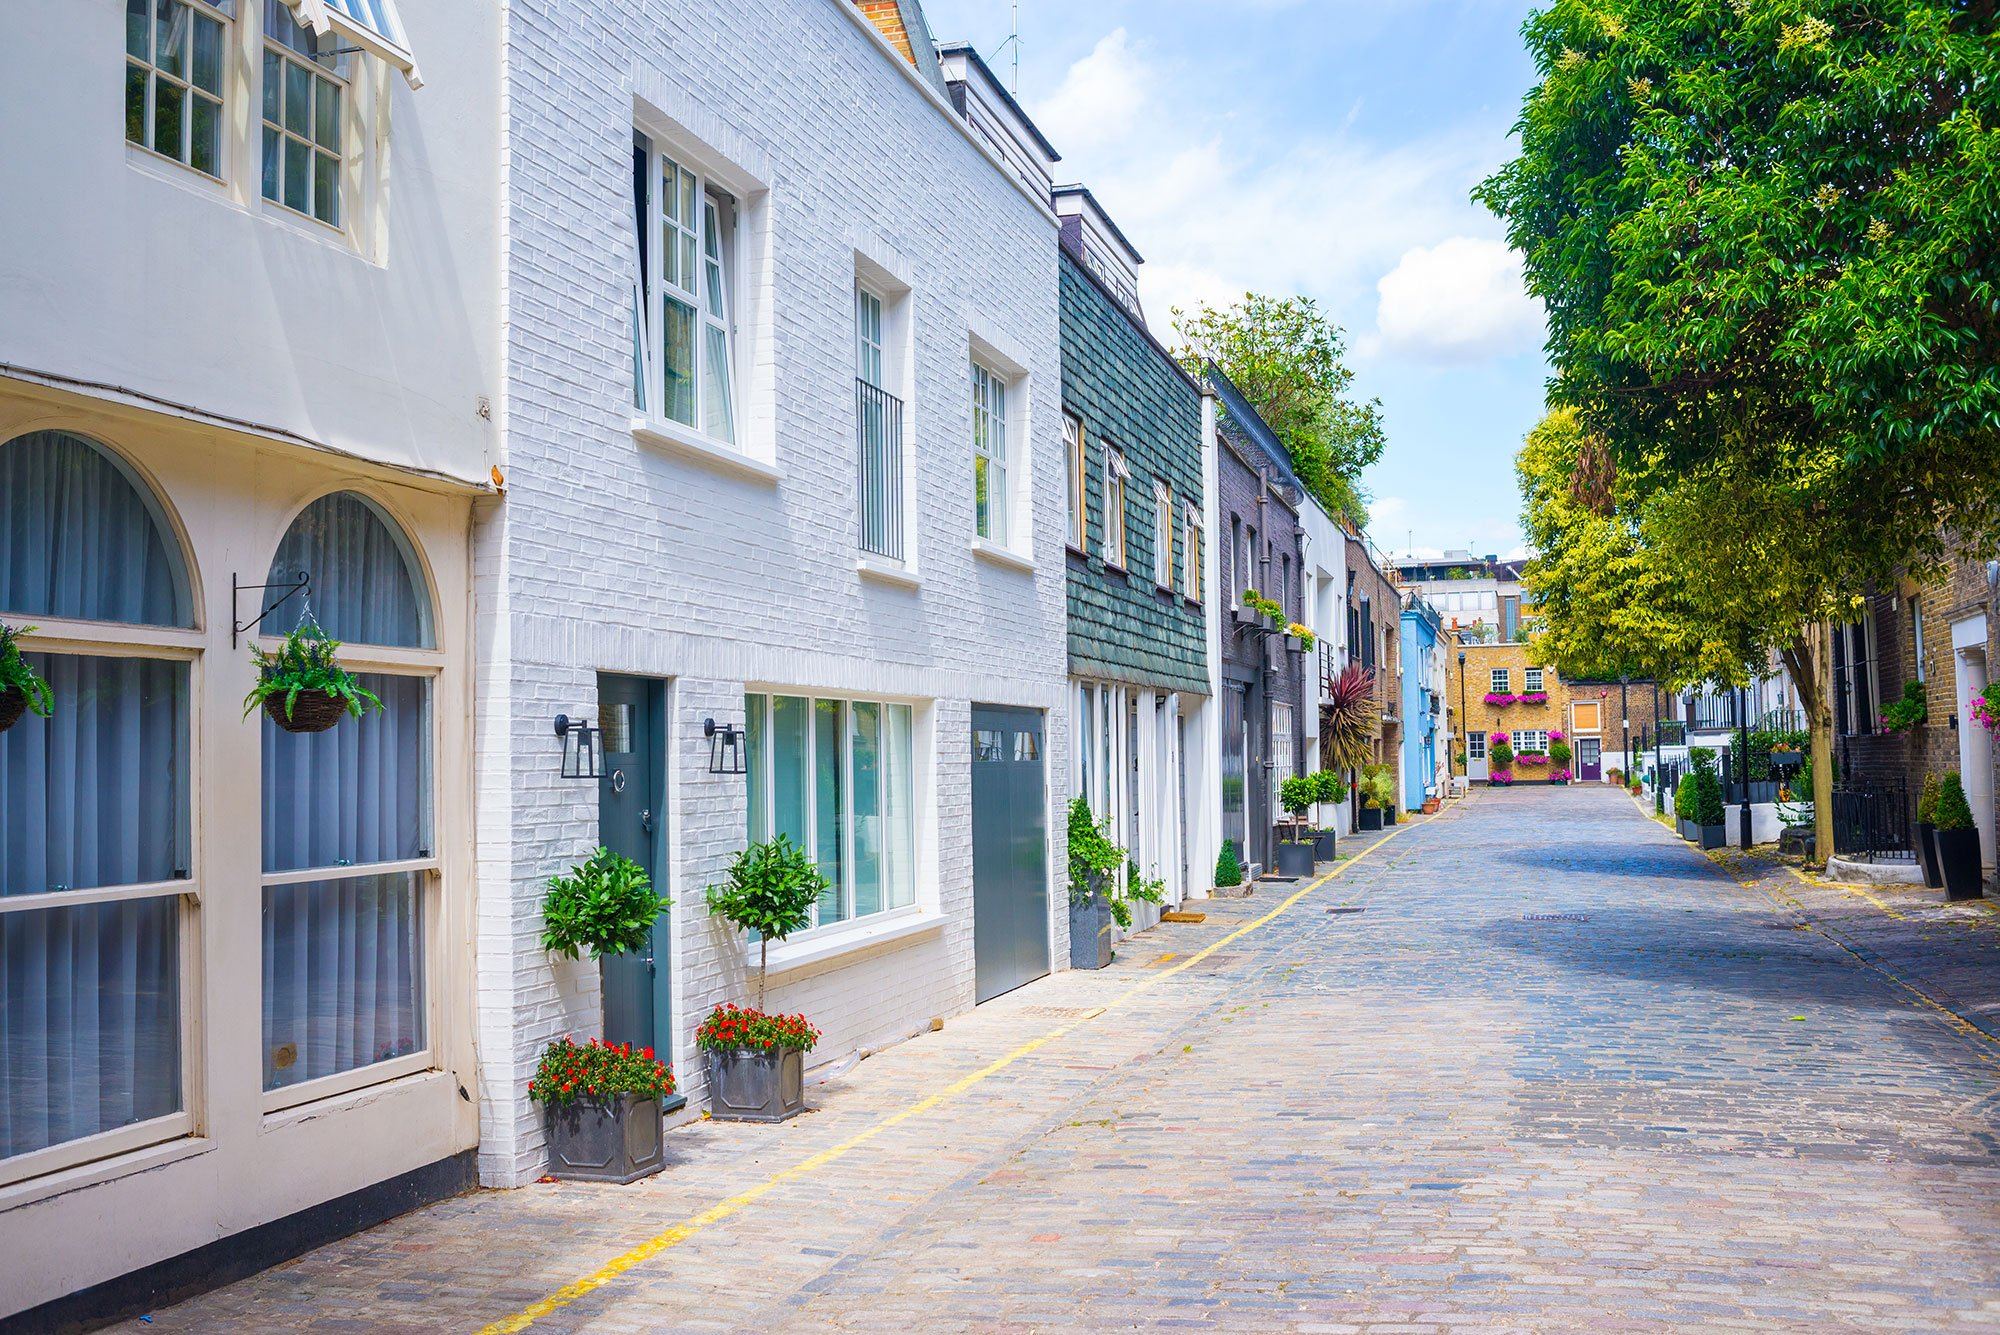 Mews houses in London